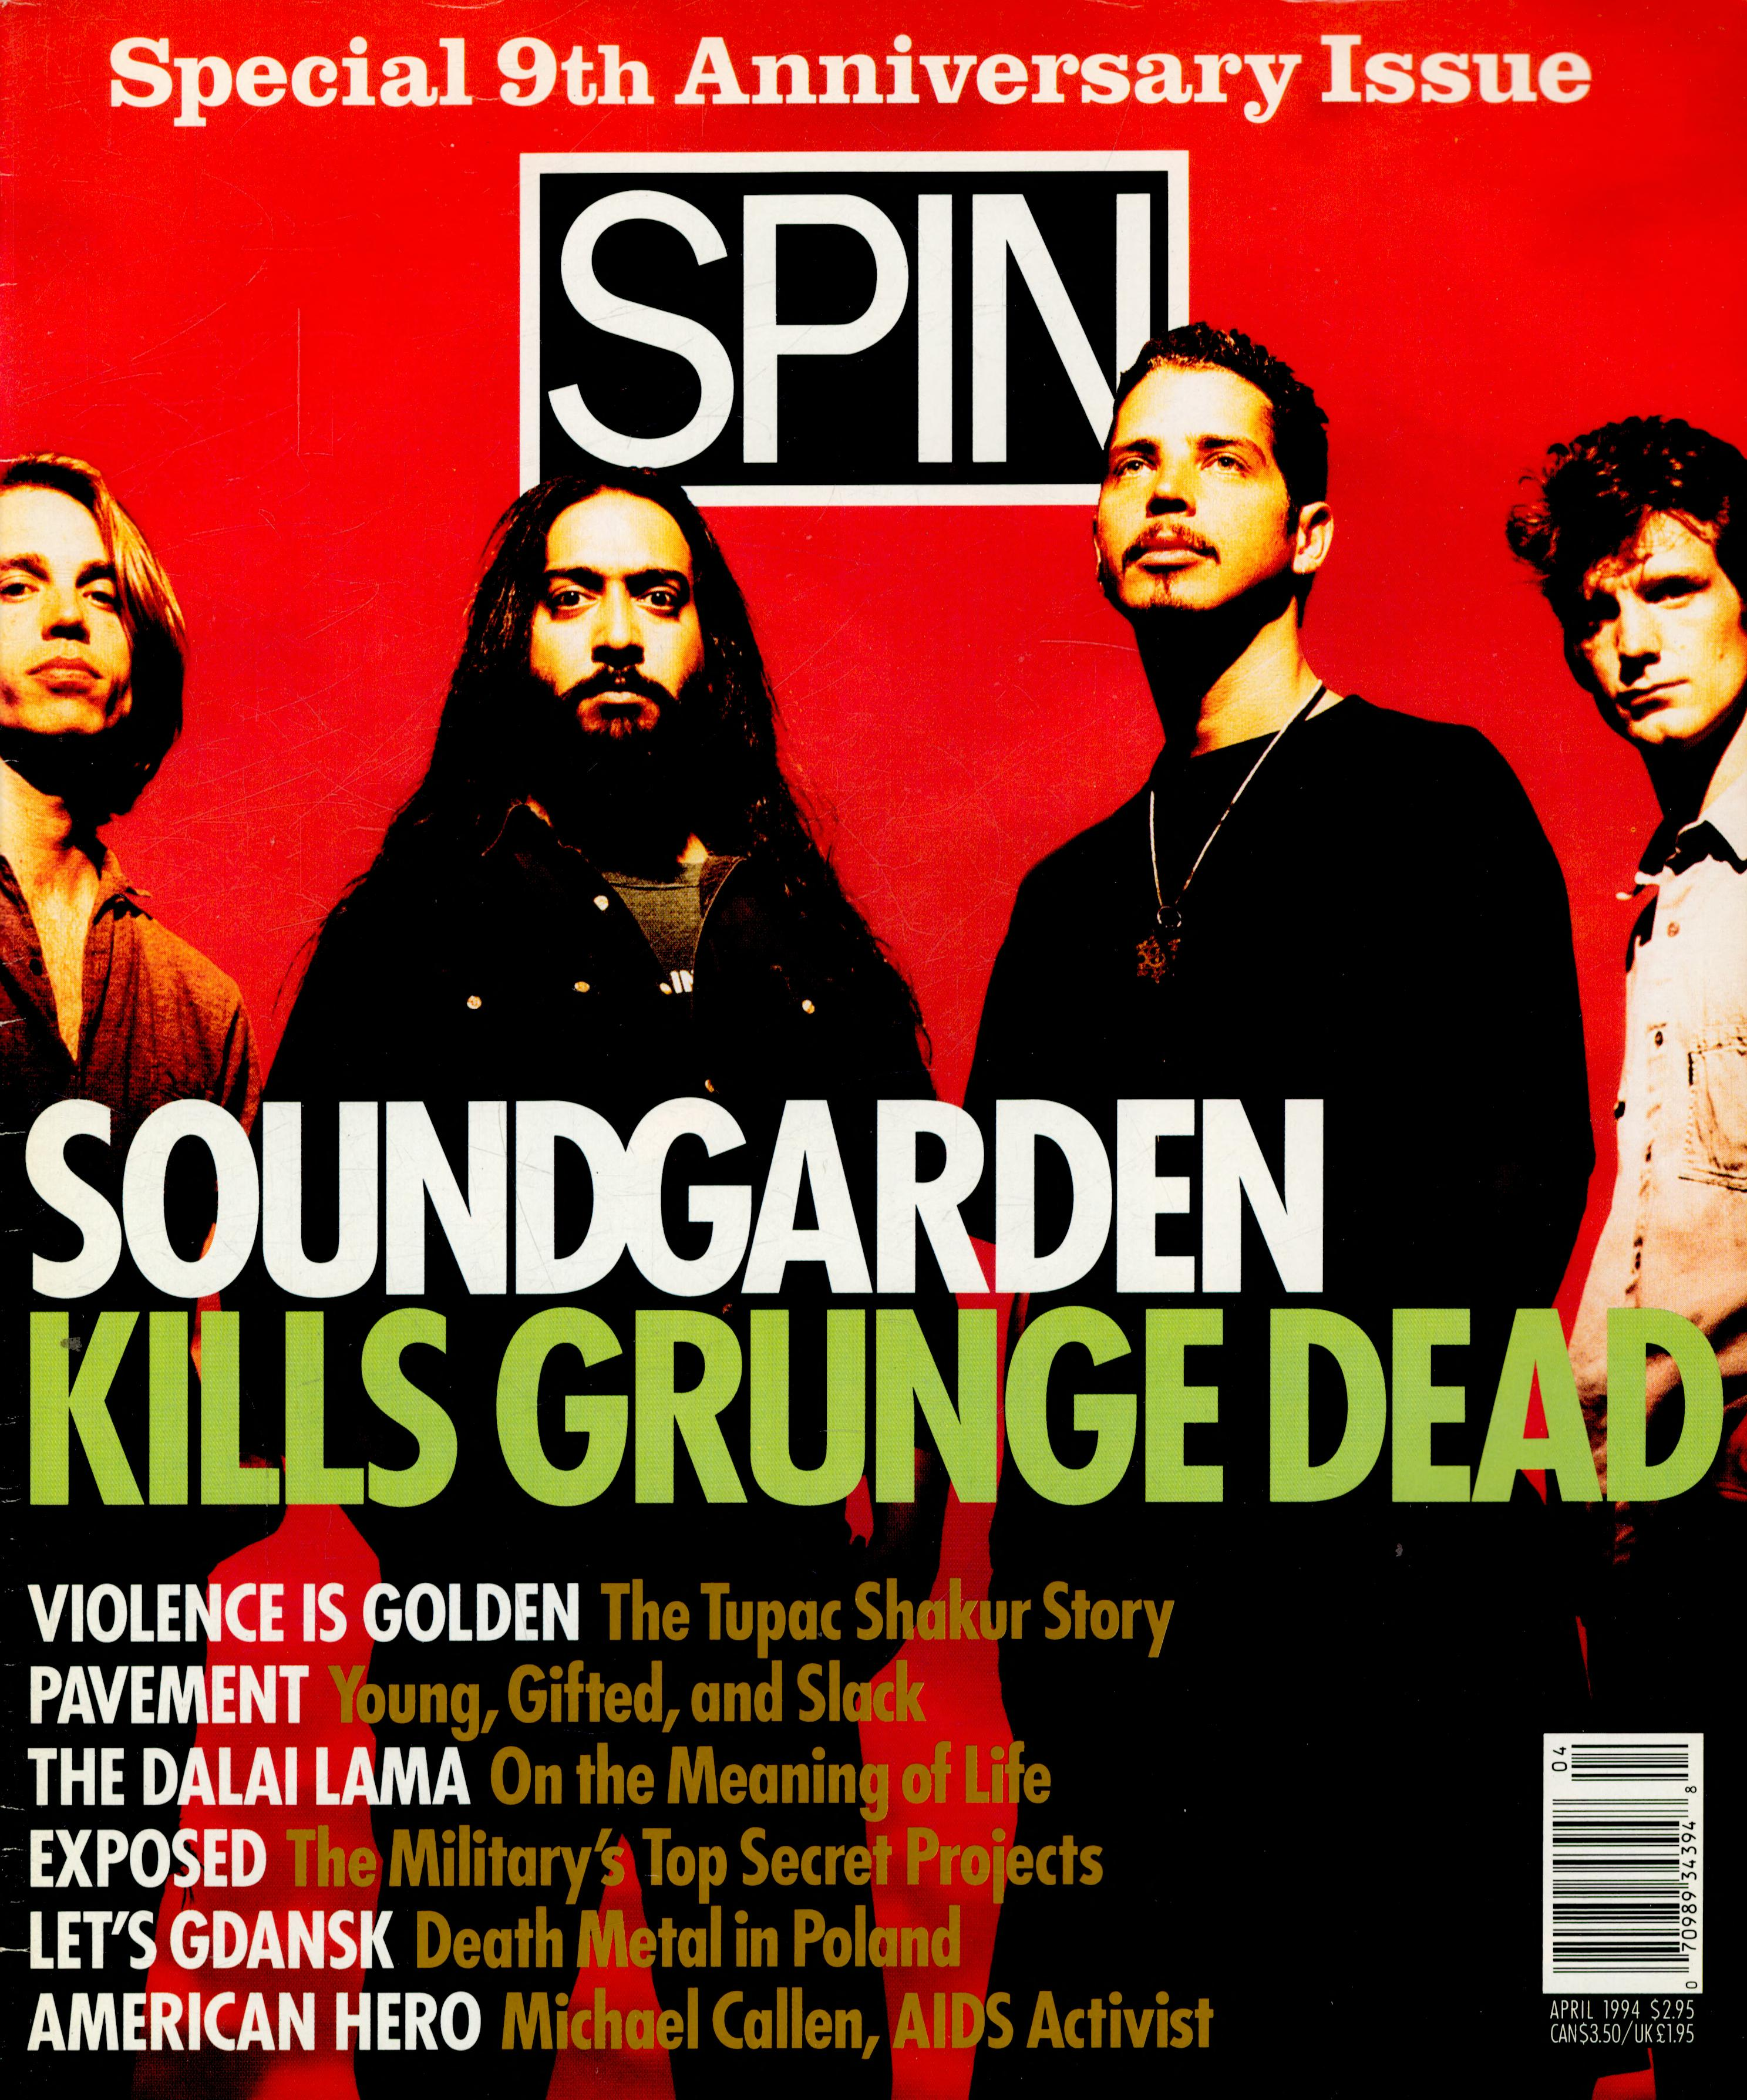 Gallery images and information soundgarden badmotorfinger tattoo - Gallery Images And Information Soundgarden Badmotorfinger Tattoo 40